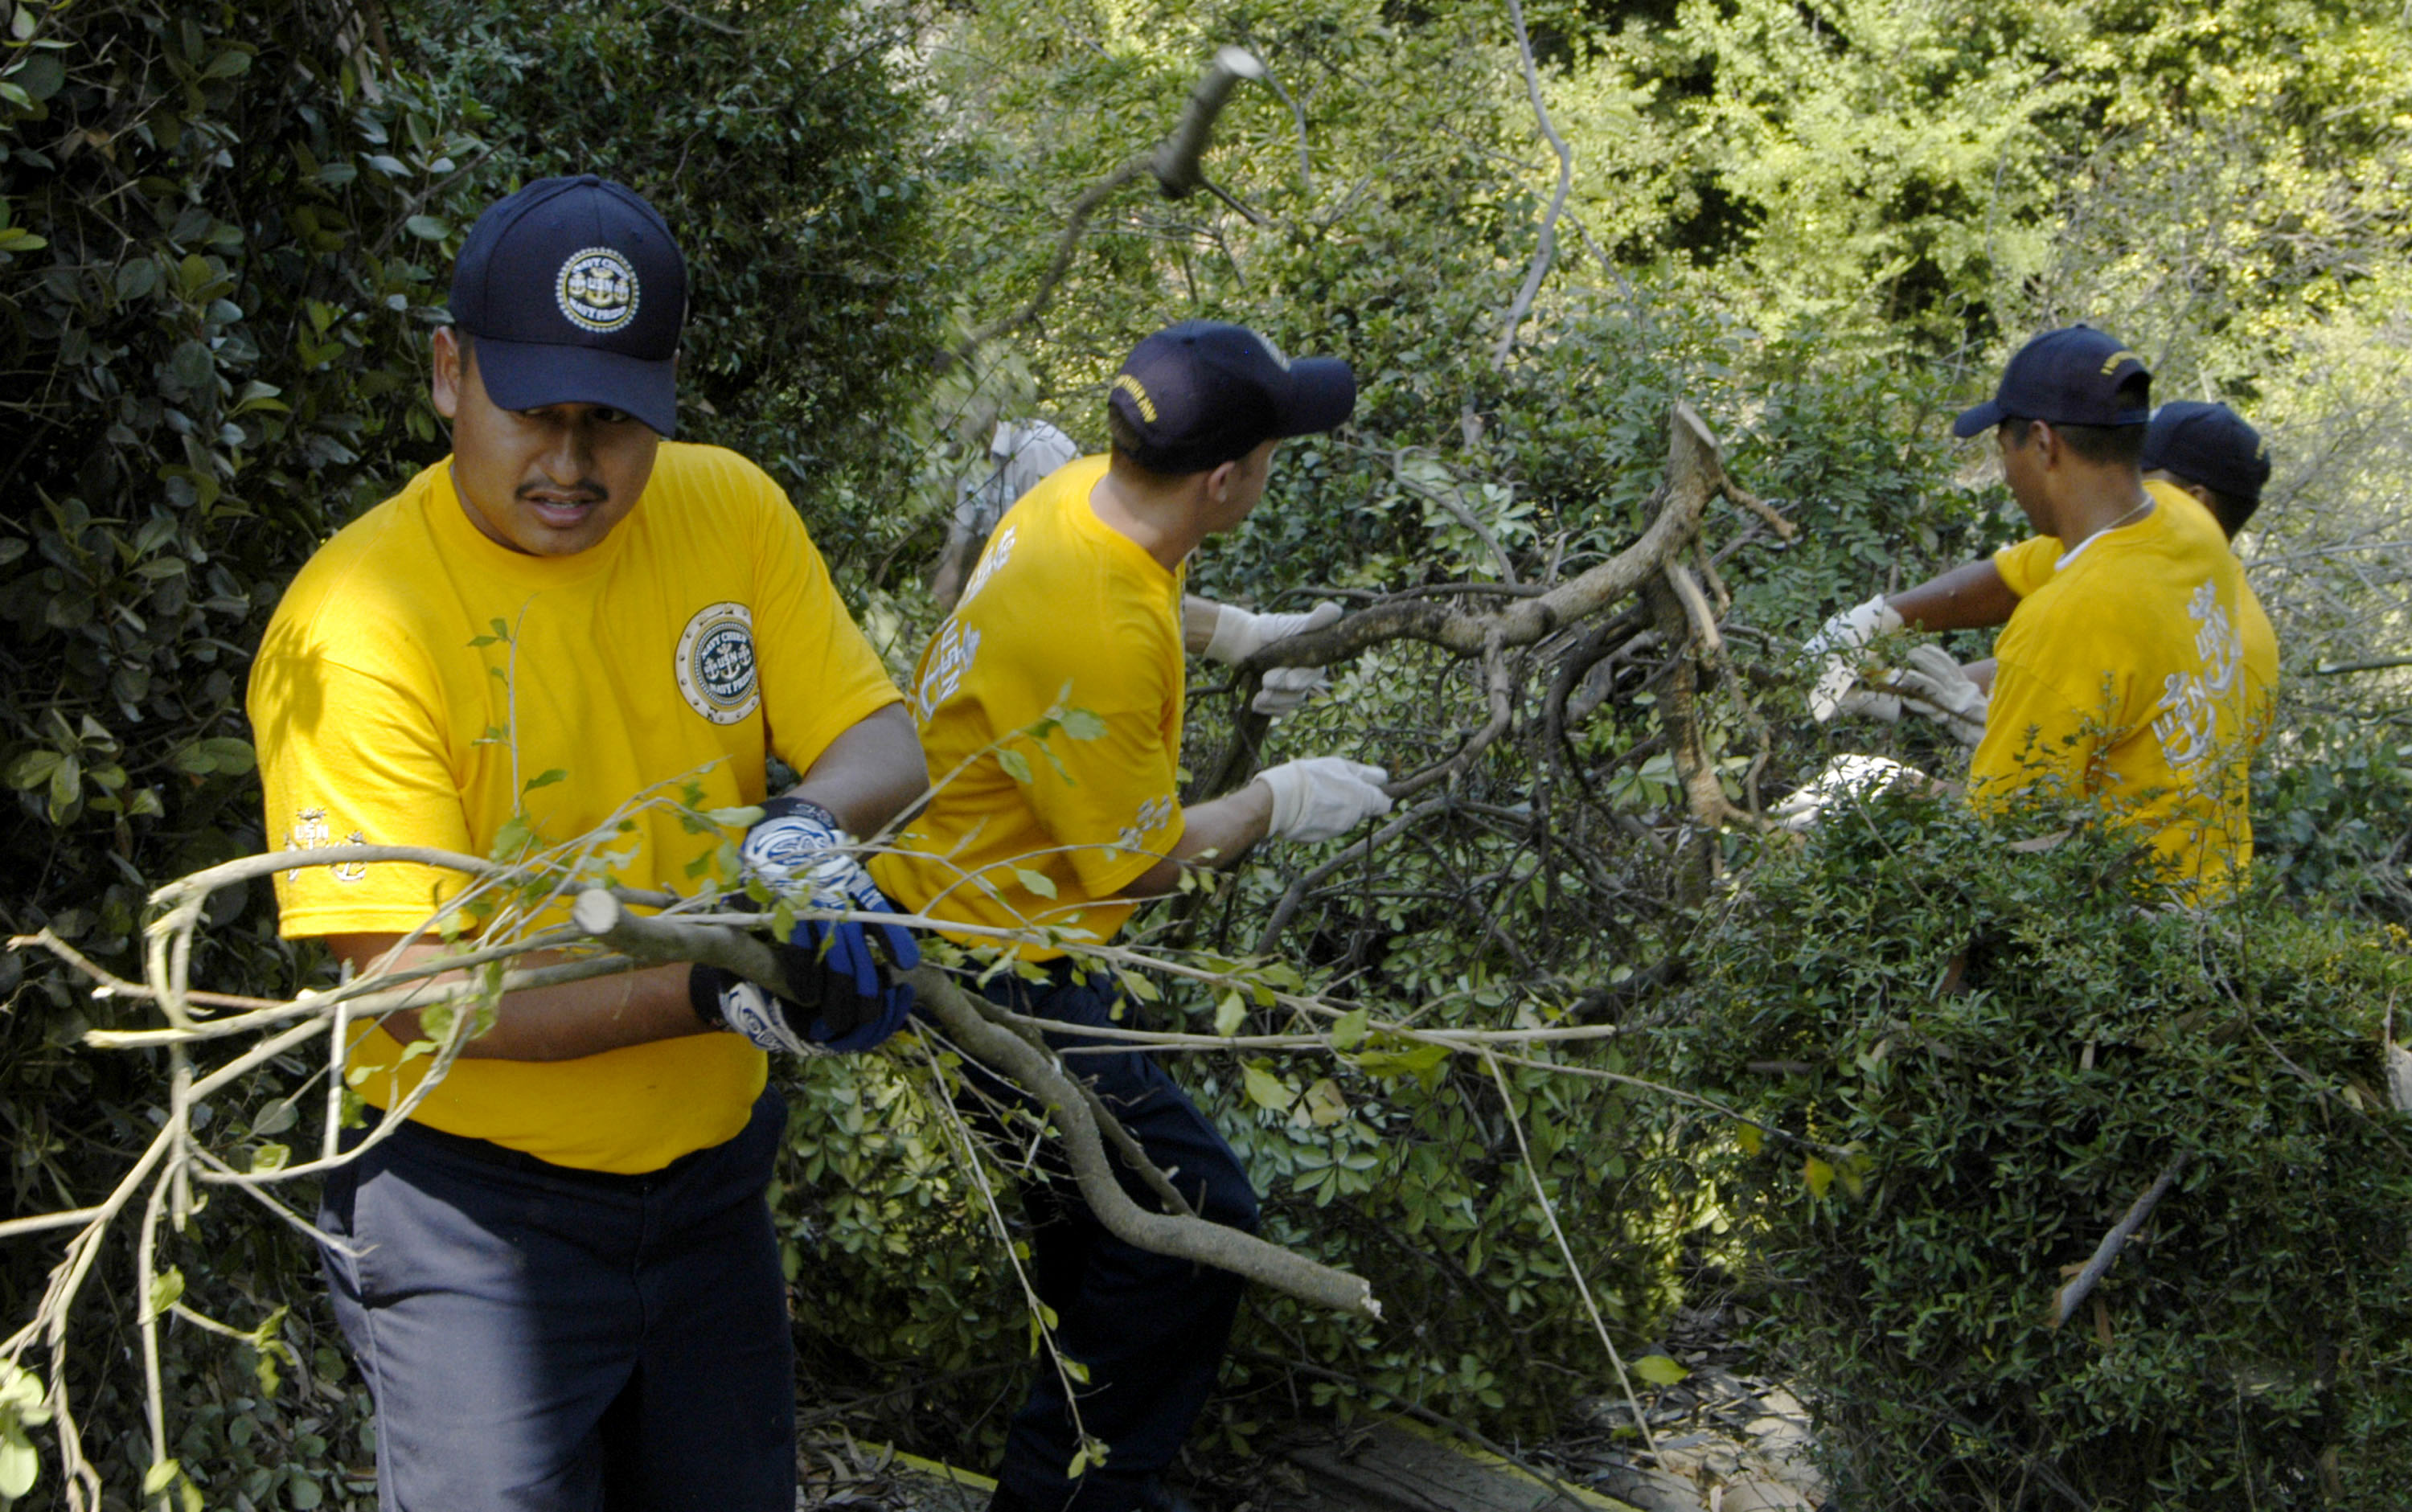 US Navy 060907-N-6597H-182 Chiefs and chief selectees from the San Diego area help clear out old tree branches and shrubbery from the Marston House Museum and Garden as part of their community service projects for Chief Petty O.jpg